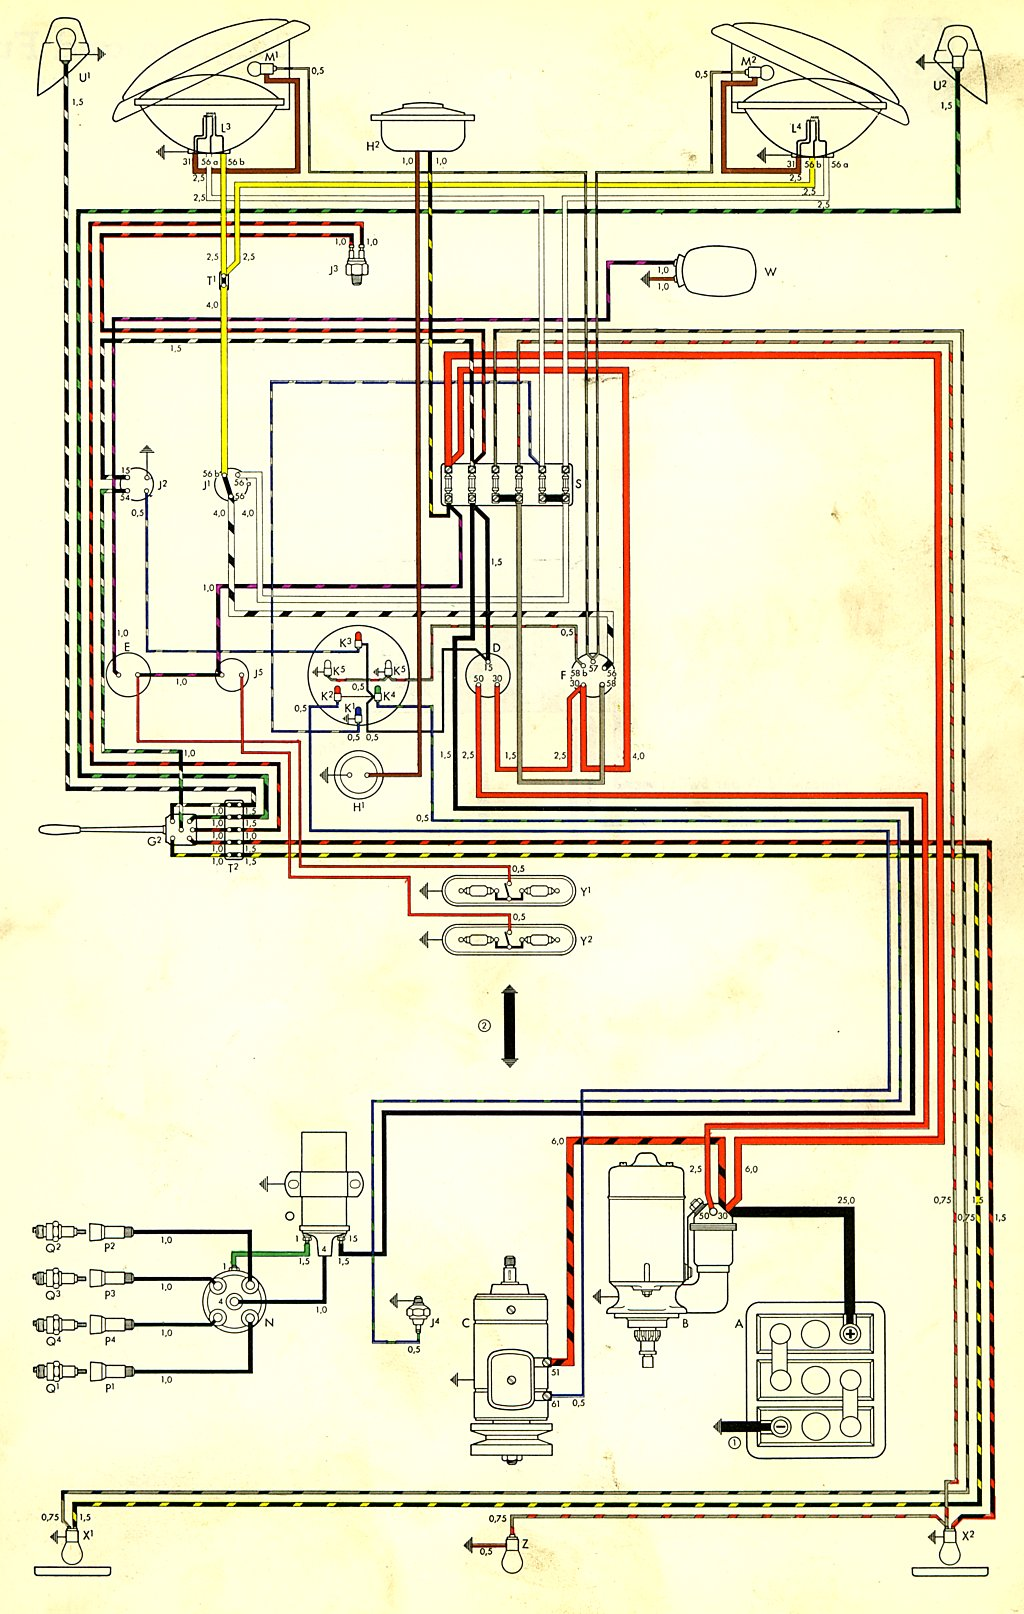 Wiring Diagrams For Code Color Wires 1989 5 0l 5 8l 7 5l Engine